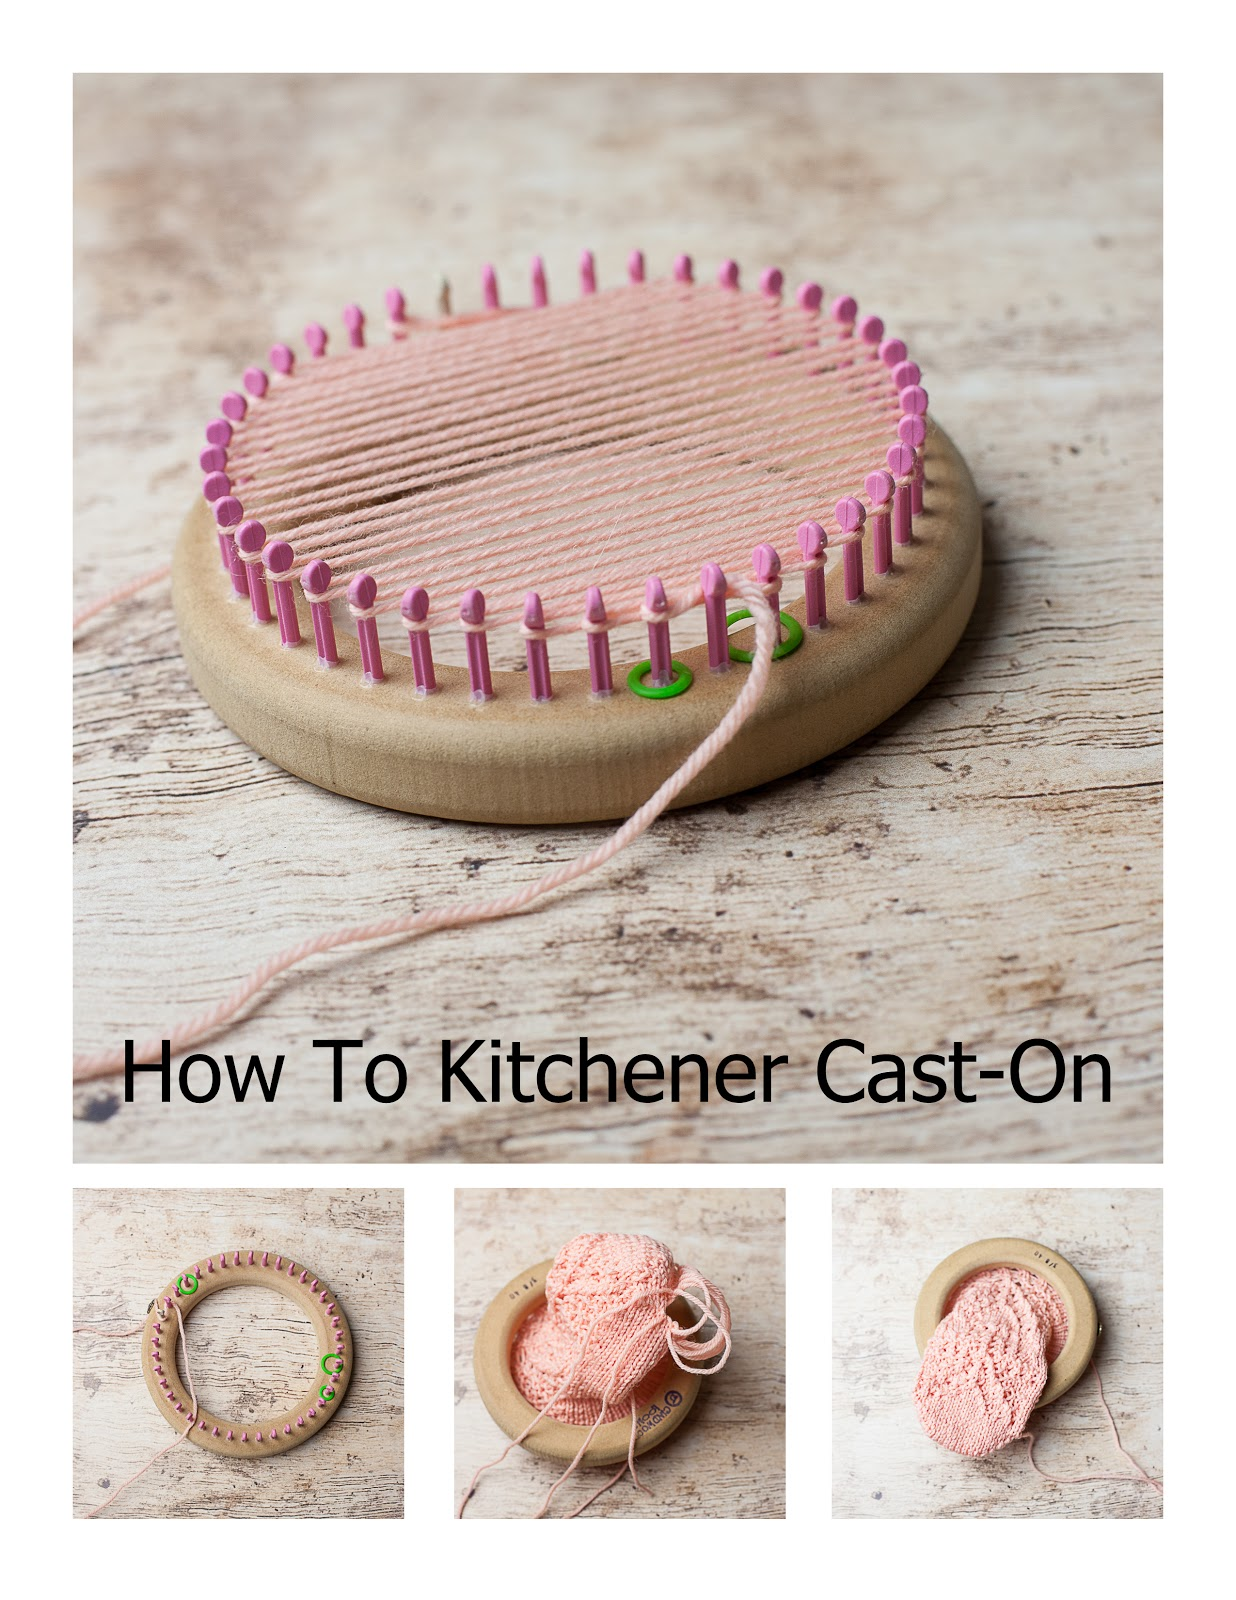 Kitchener cast on, loom knitting, loom, how to loom knit, tutorials, pictorials, Kitchener Stitch, Kitchener seam, Toe-up socks,